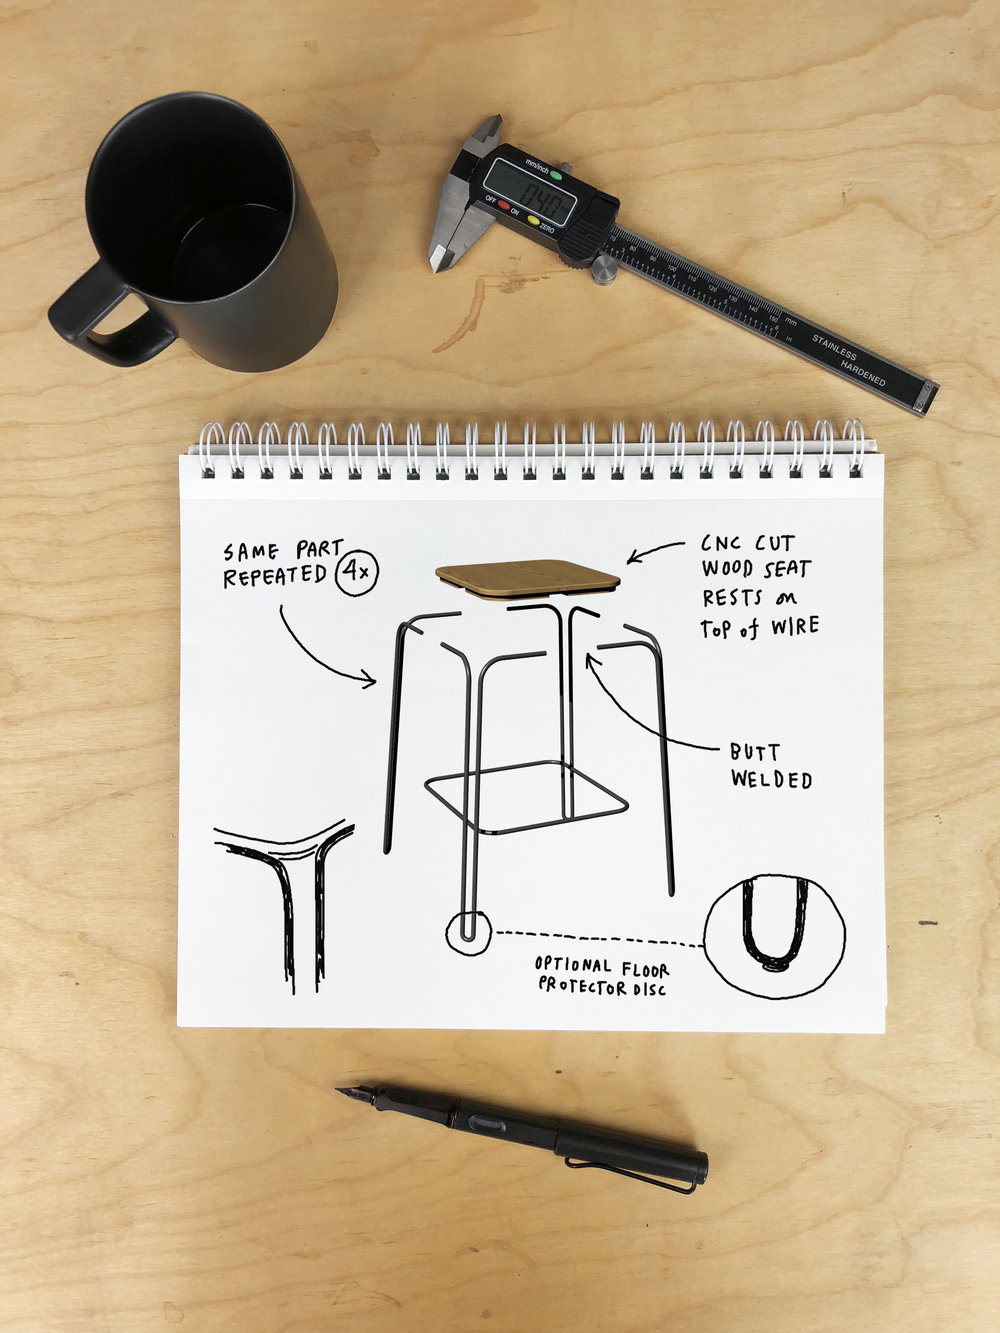 - While Stool Nº1 appears to have a continuous wire frame, it's actually constructed from 4 identical legs butt welded together. This creates manufacturing efficiency for the CNC wire bending process by only having to create a two types of parts—a few simple pieces come together to express the final design.